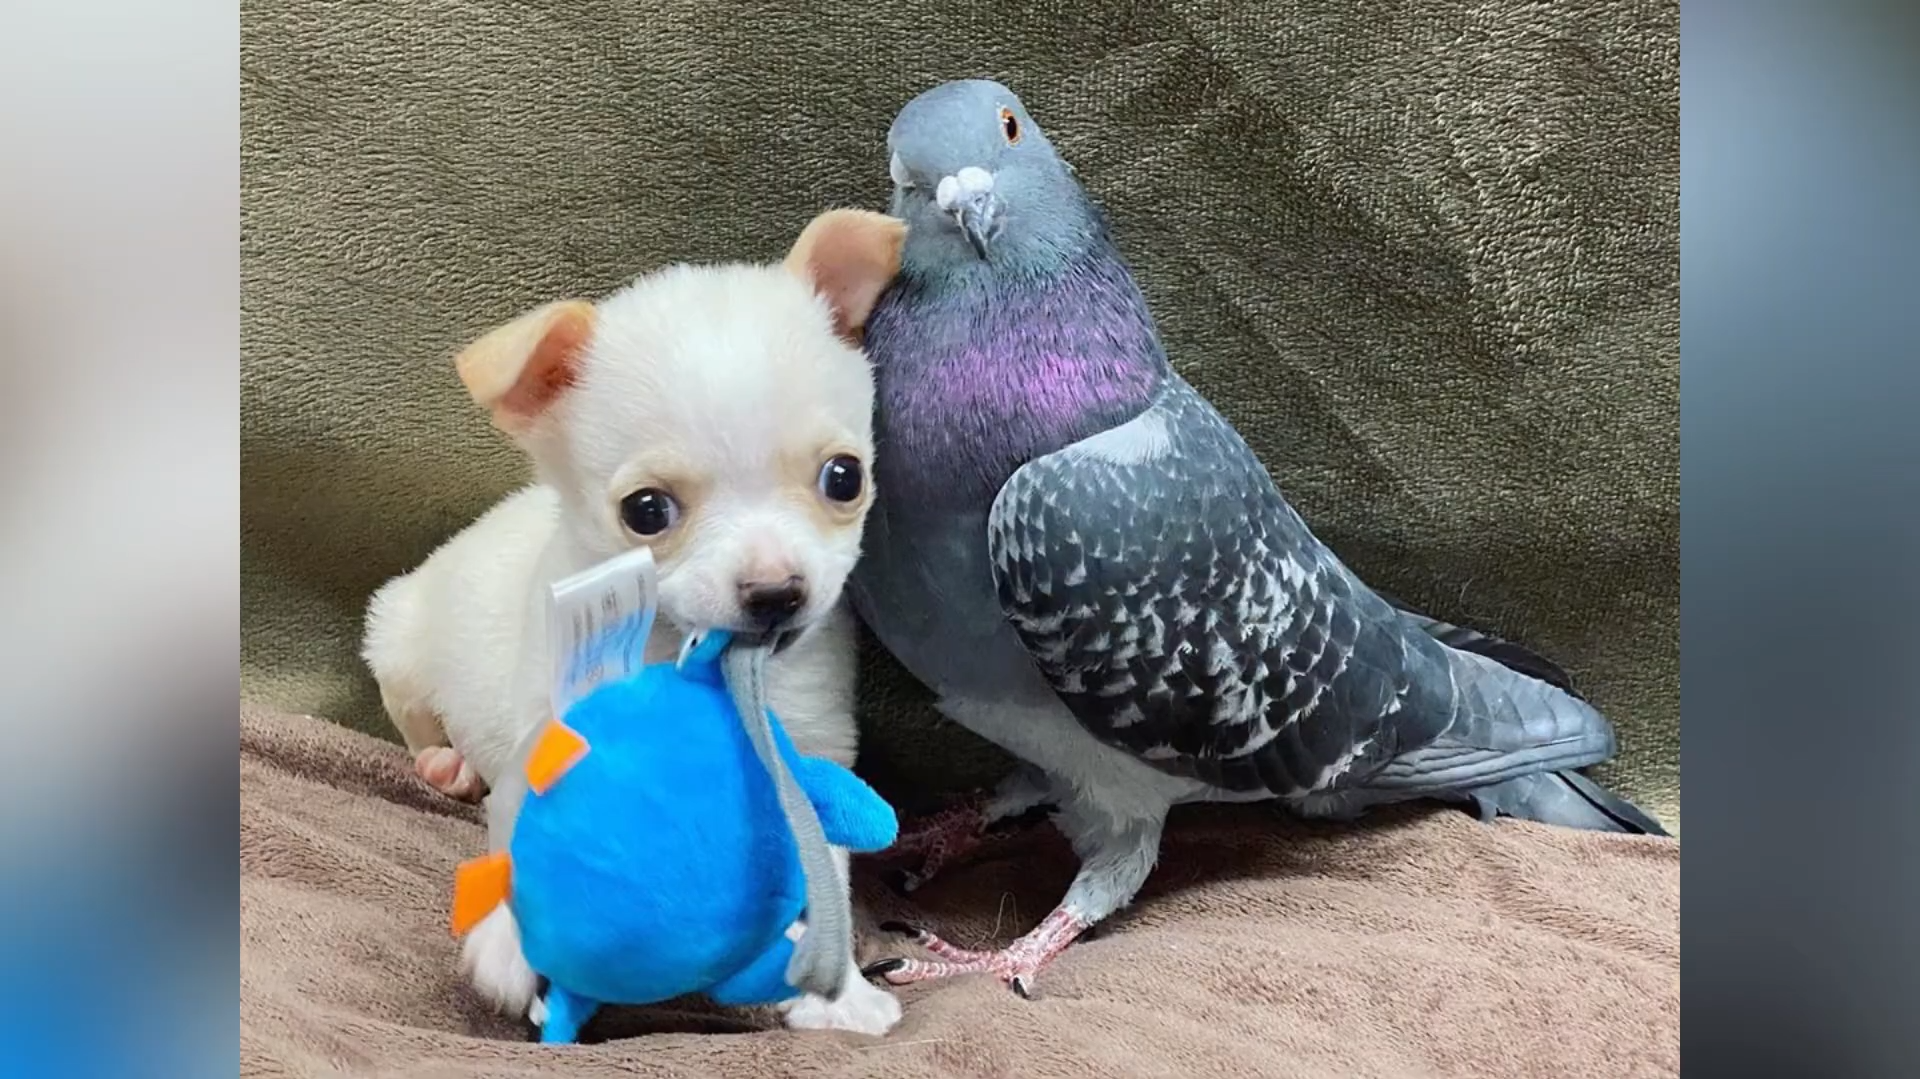 The Disabled Chihuahua Puppy Who Befriended a Flightless Pigeon Now Has a Tiny Wheelchair